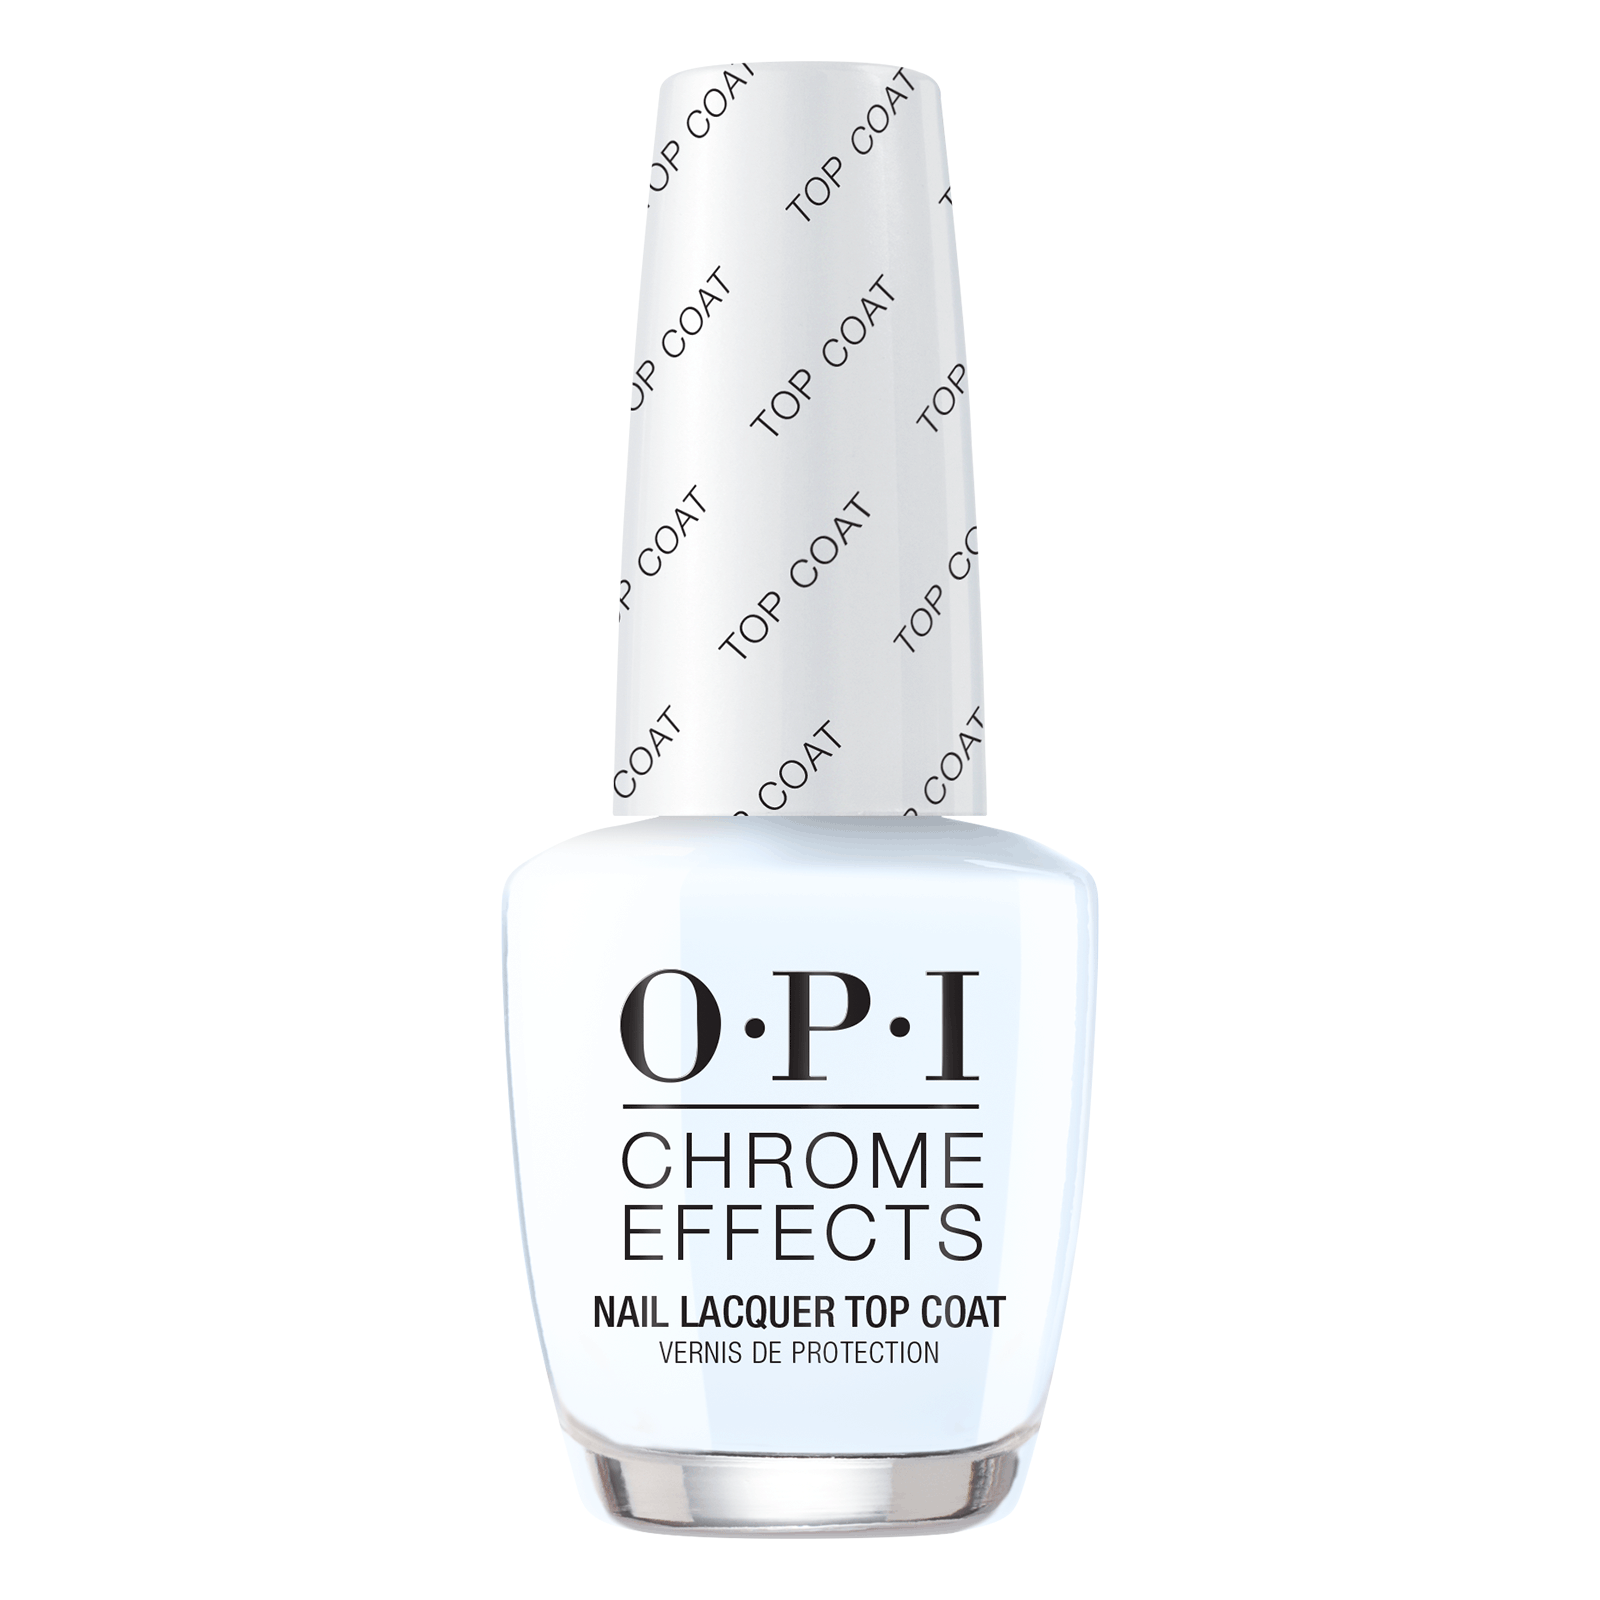 Chrome Effects - Nail Lacquer Top Coat - OPI | CosmoProf